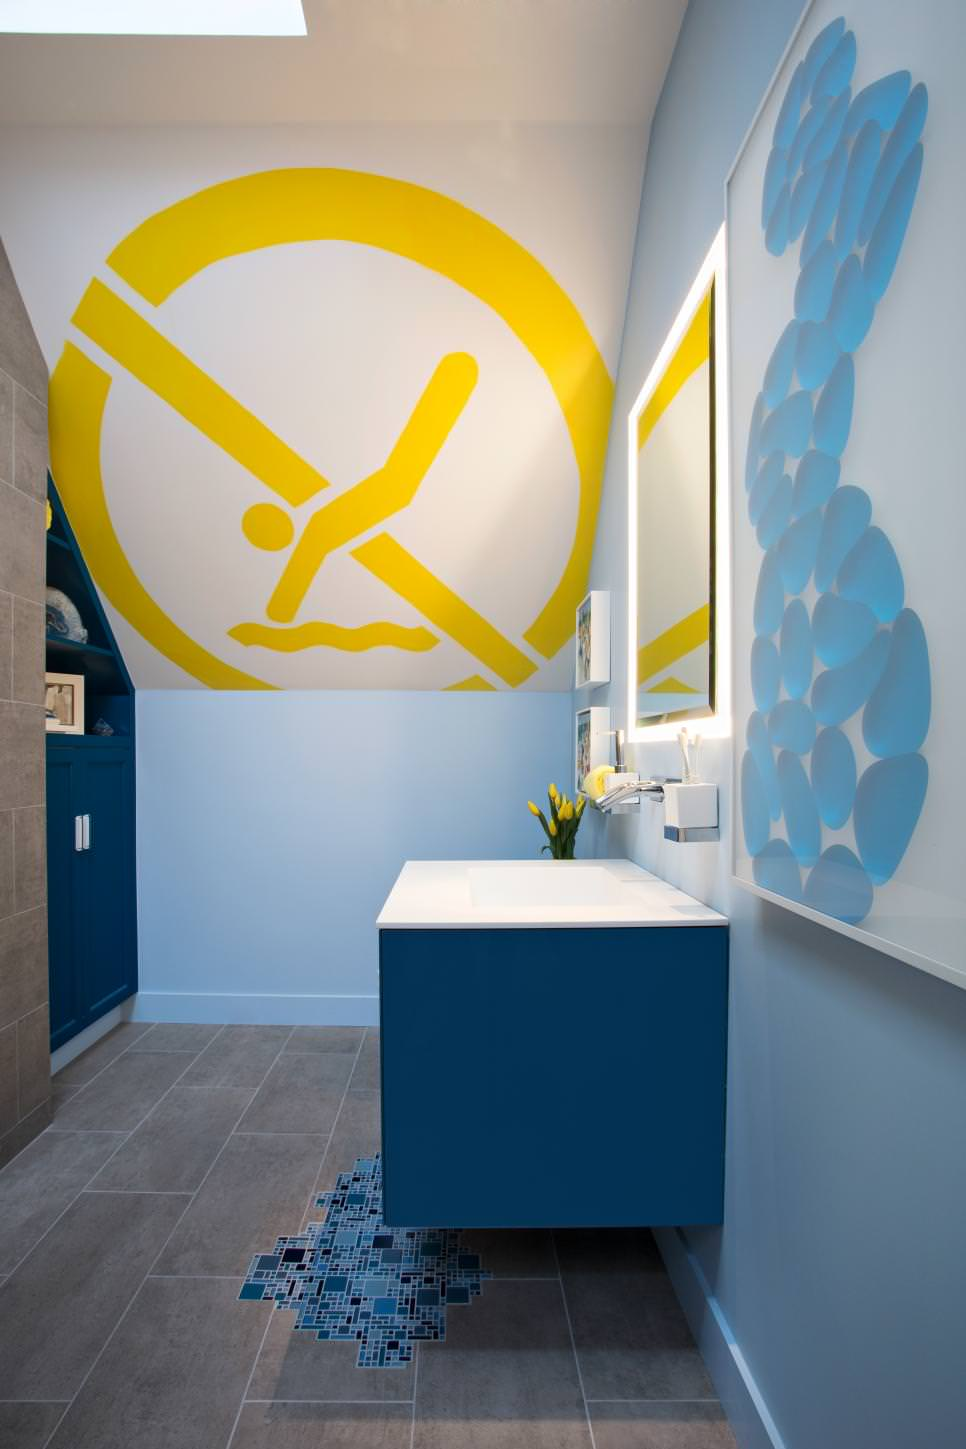 24 artful bathroom ideas designs design trends for Bathroom wall mural